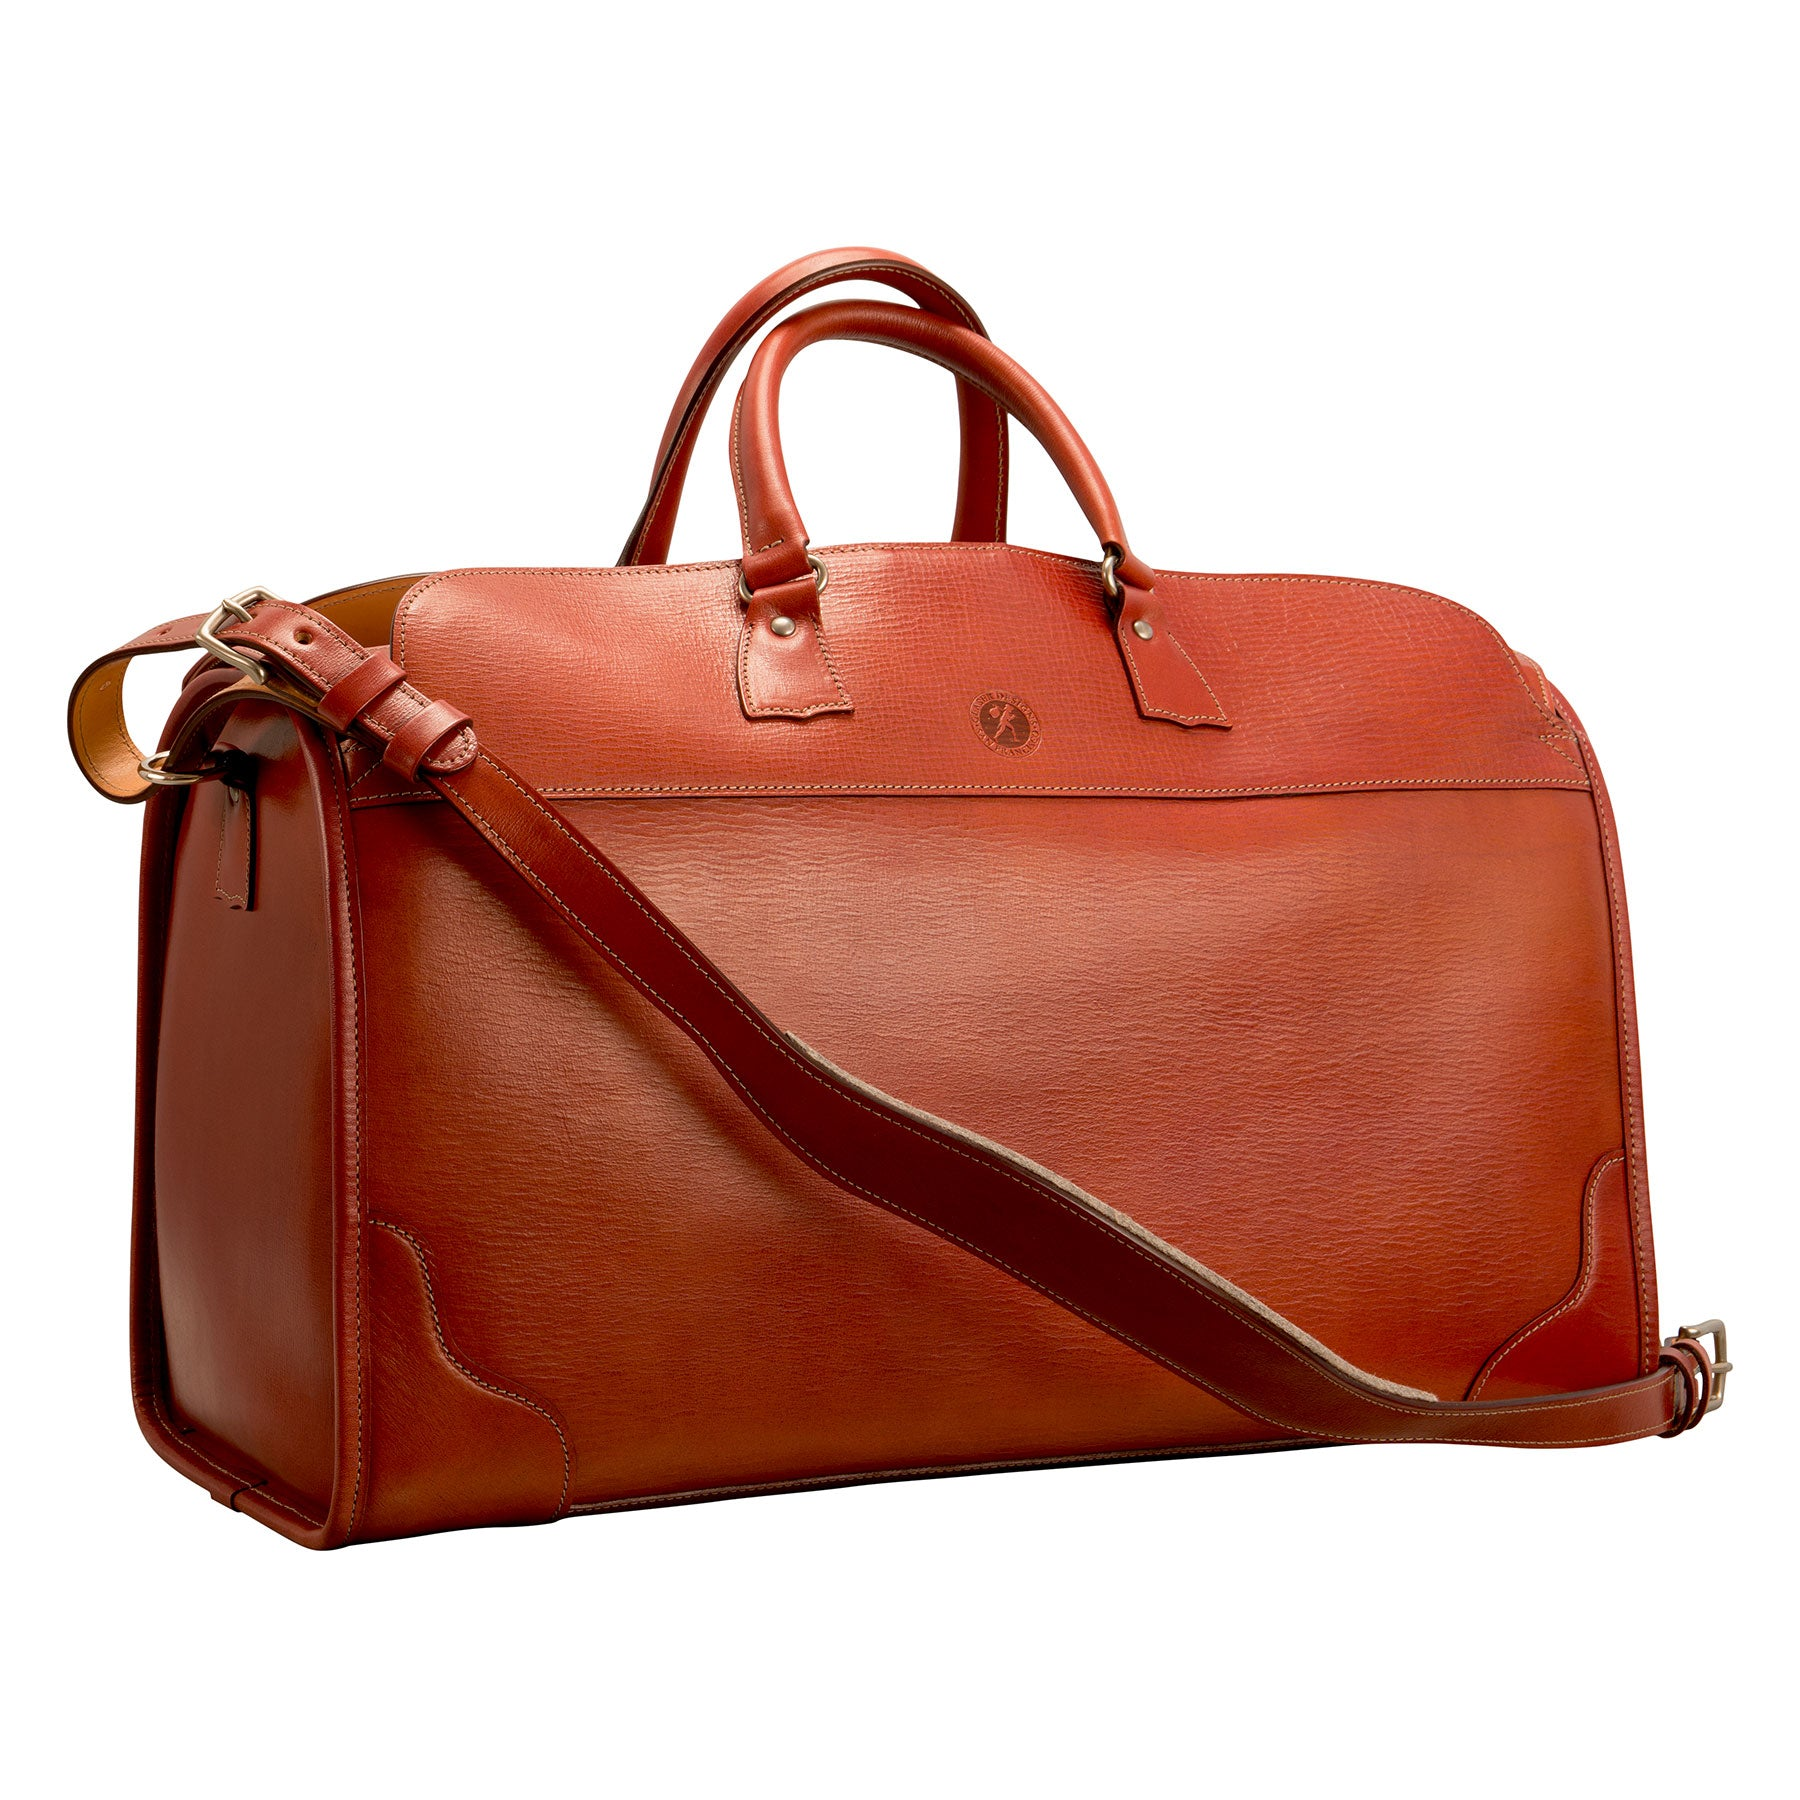 Stadium Bag: hand-grained, hand-colored leather